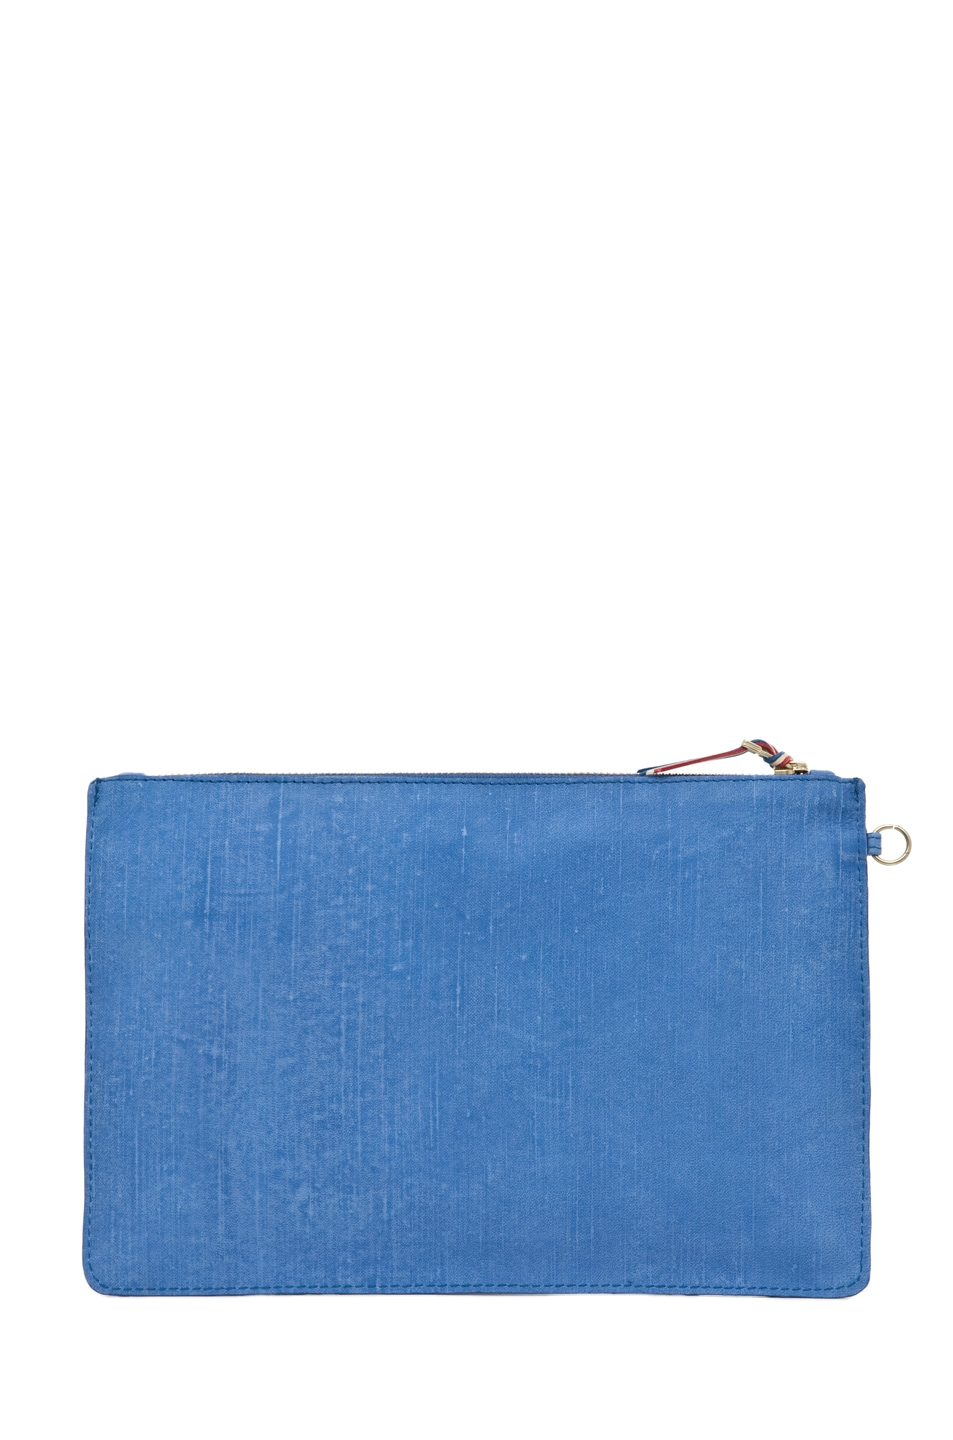 Image 2 of Jerome Dreyfuss Large Popoche Clutch in Denim Bleu